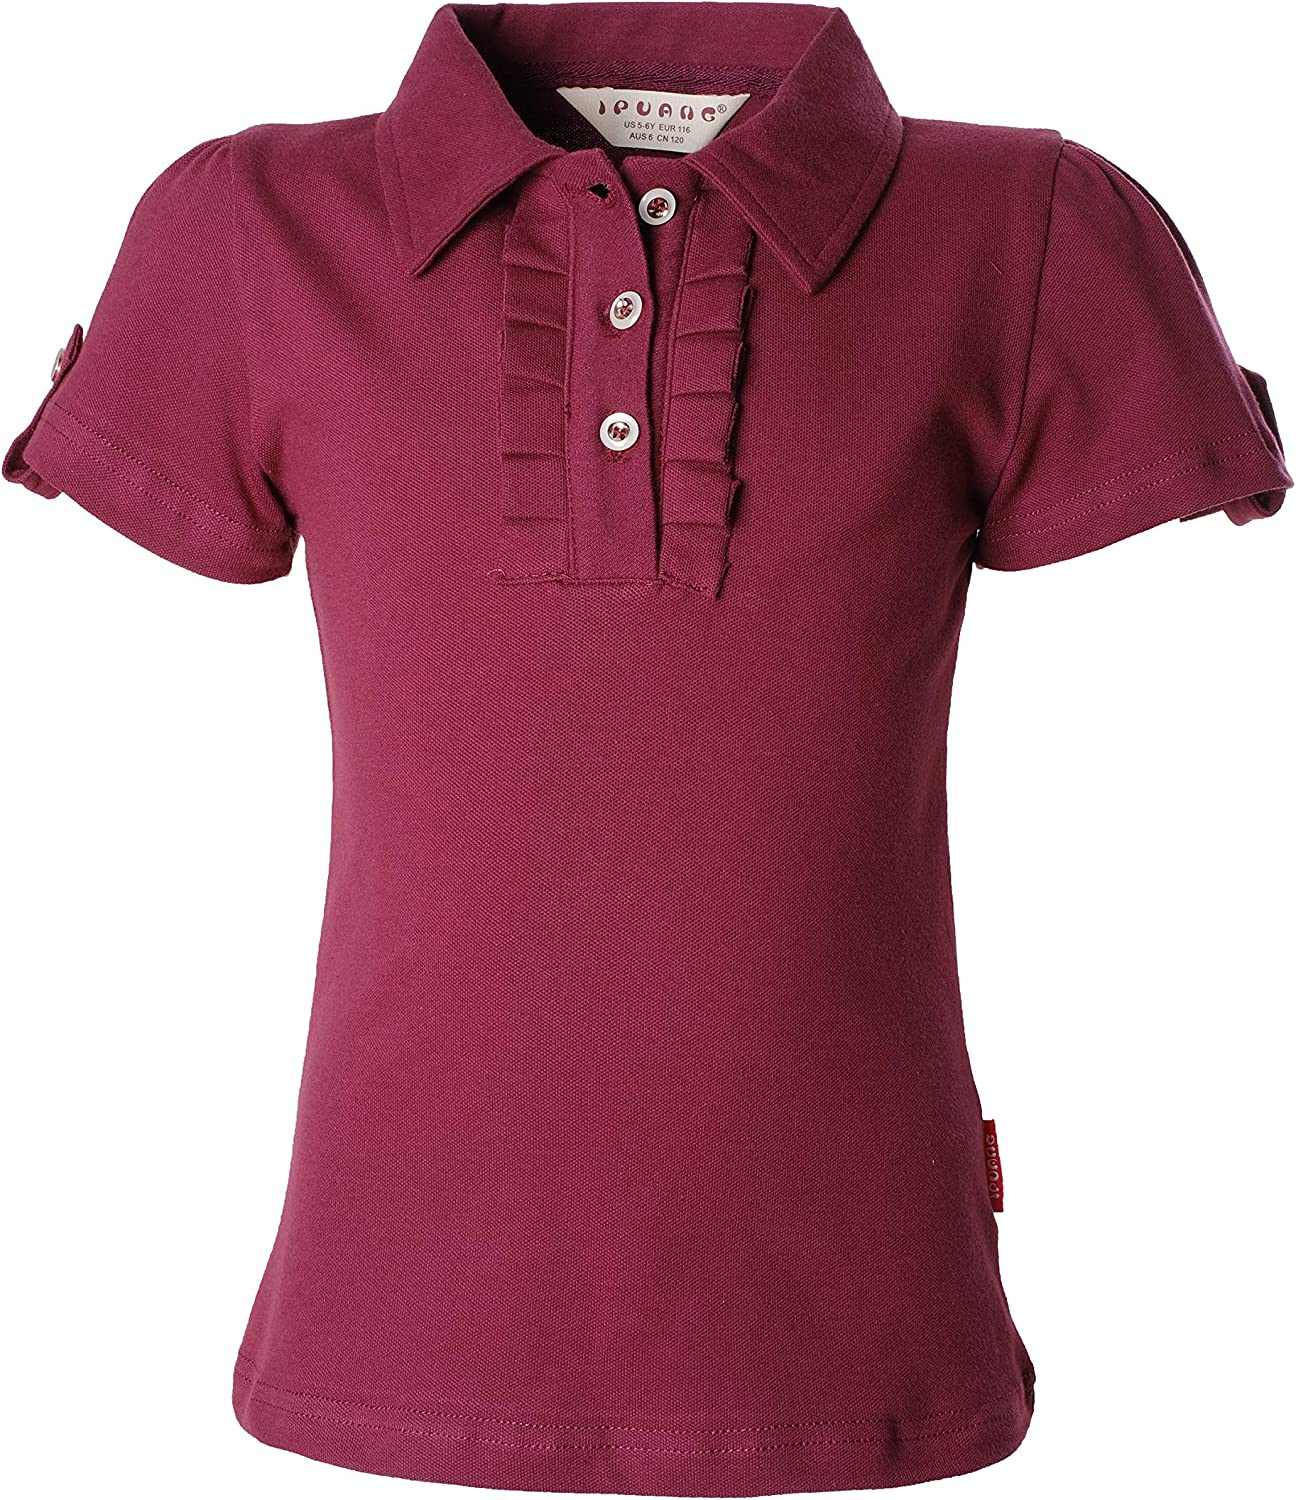 Ipuang Girl Short Sleeve Cotton Ruffle Polo Shirt Top